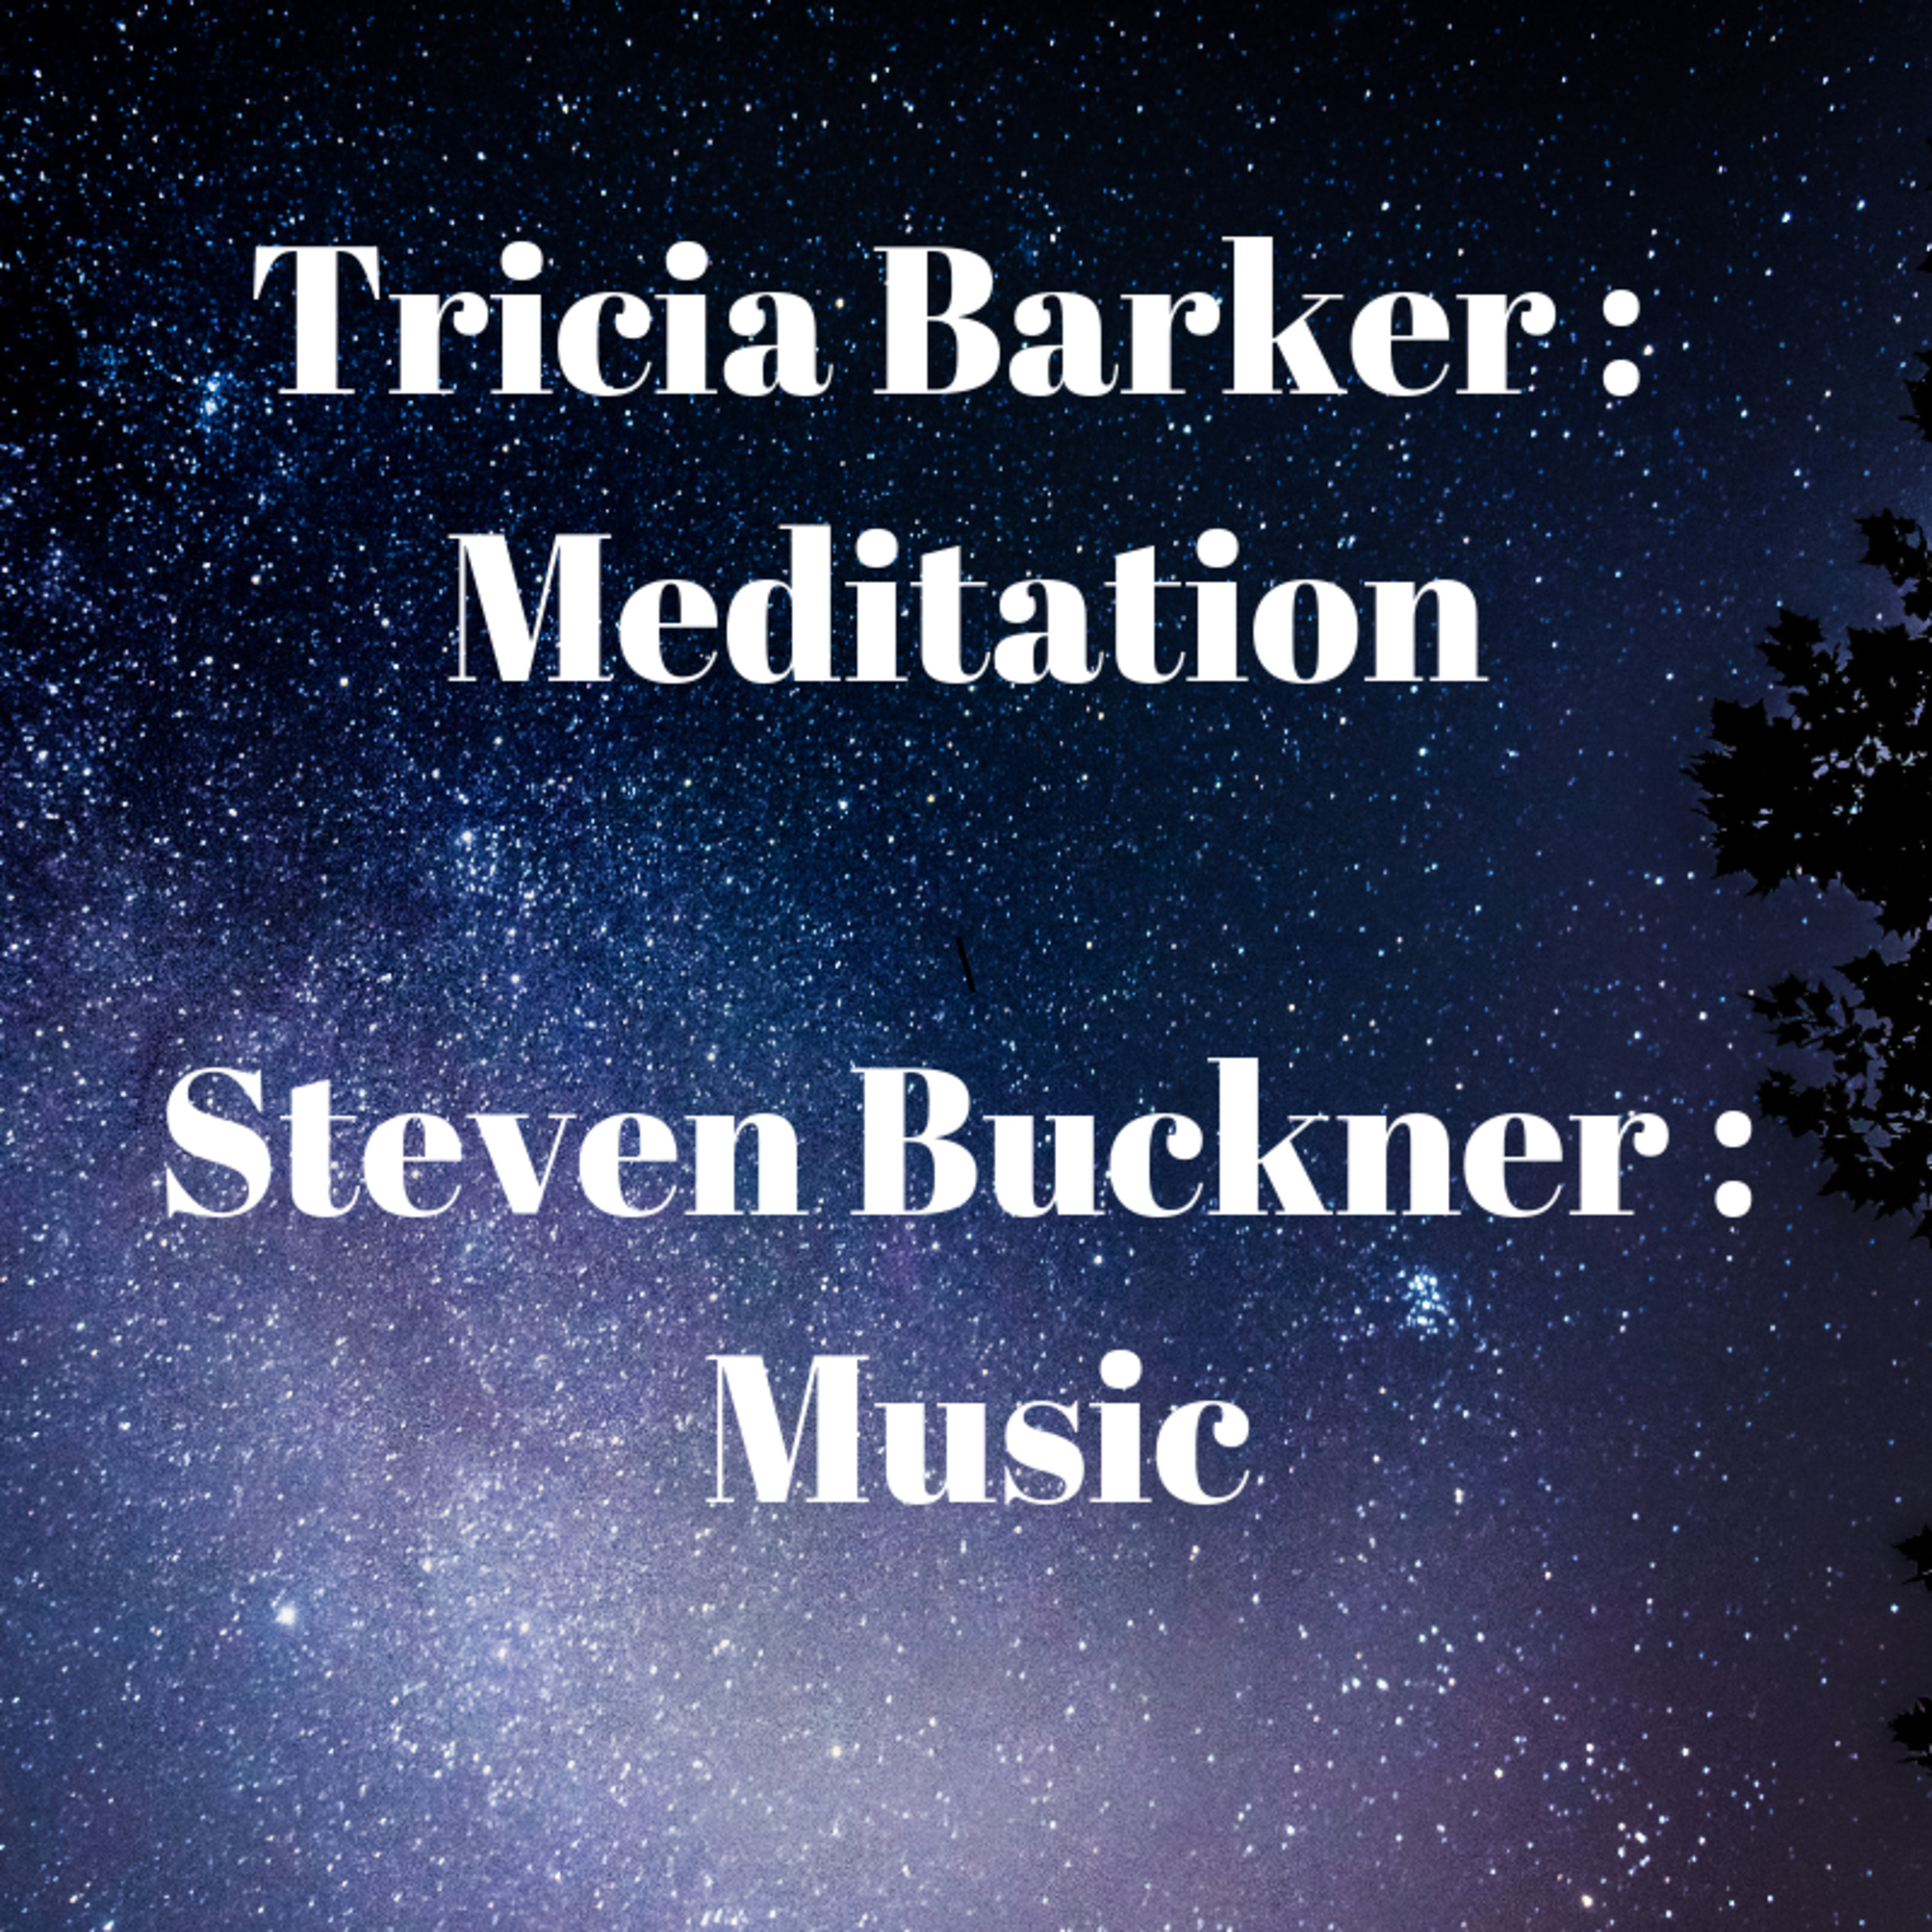 S2 Ep. 18 Steven Buckner's Music and Tricia Barker's Guided Meditation for Deeper Connection with God